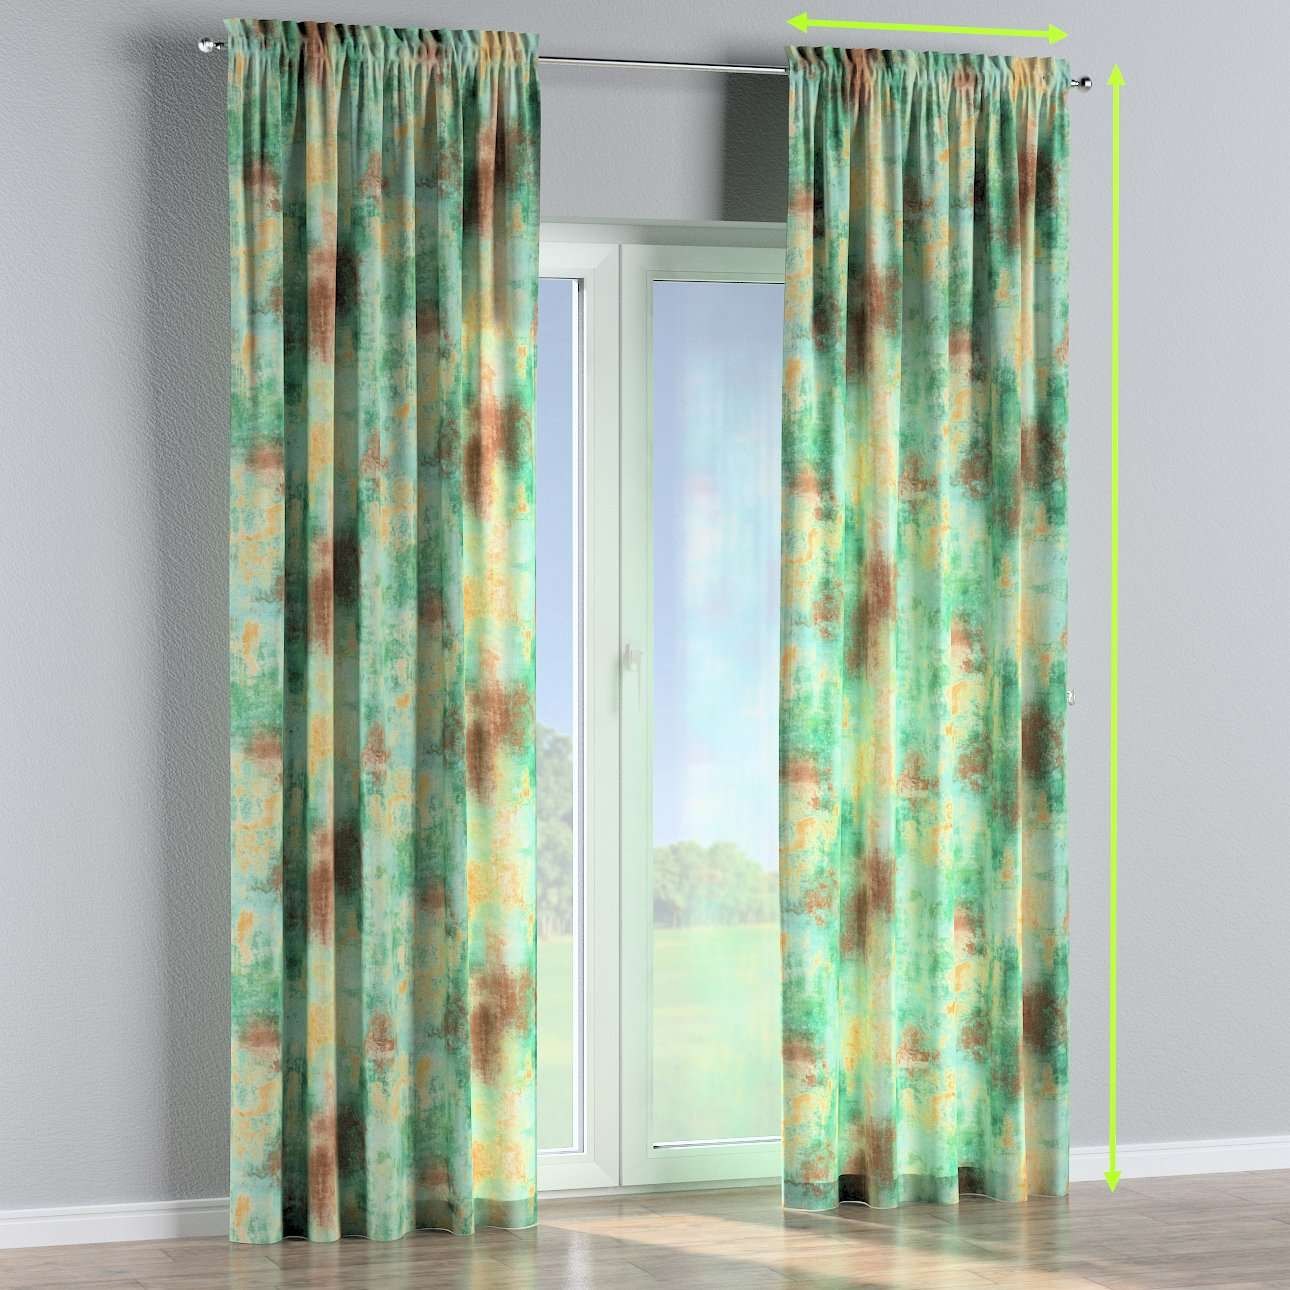 Slot and frill lined curtains in collection Urban Jungle, fabric: 141-22